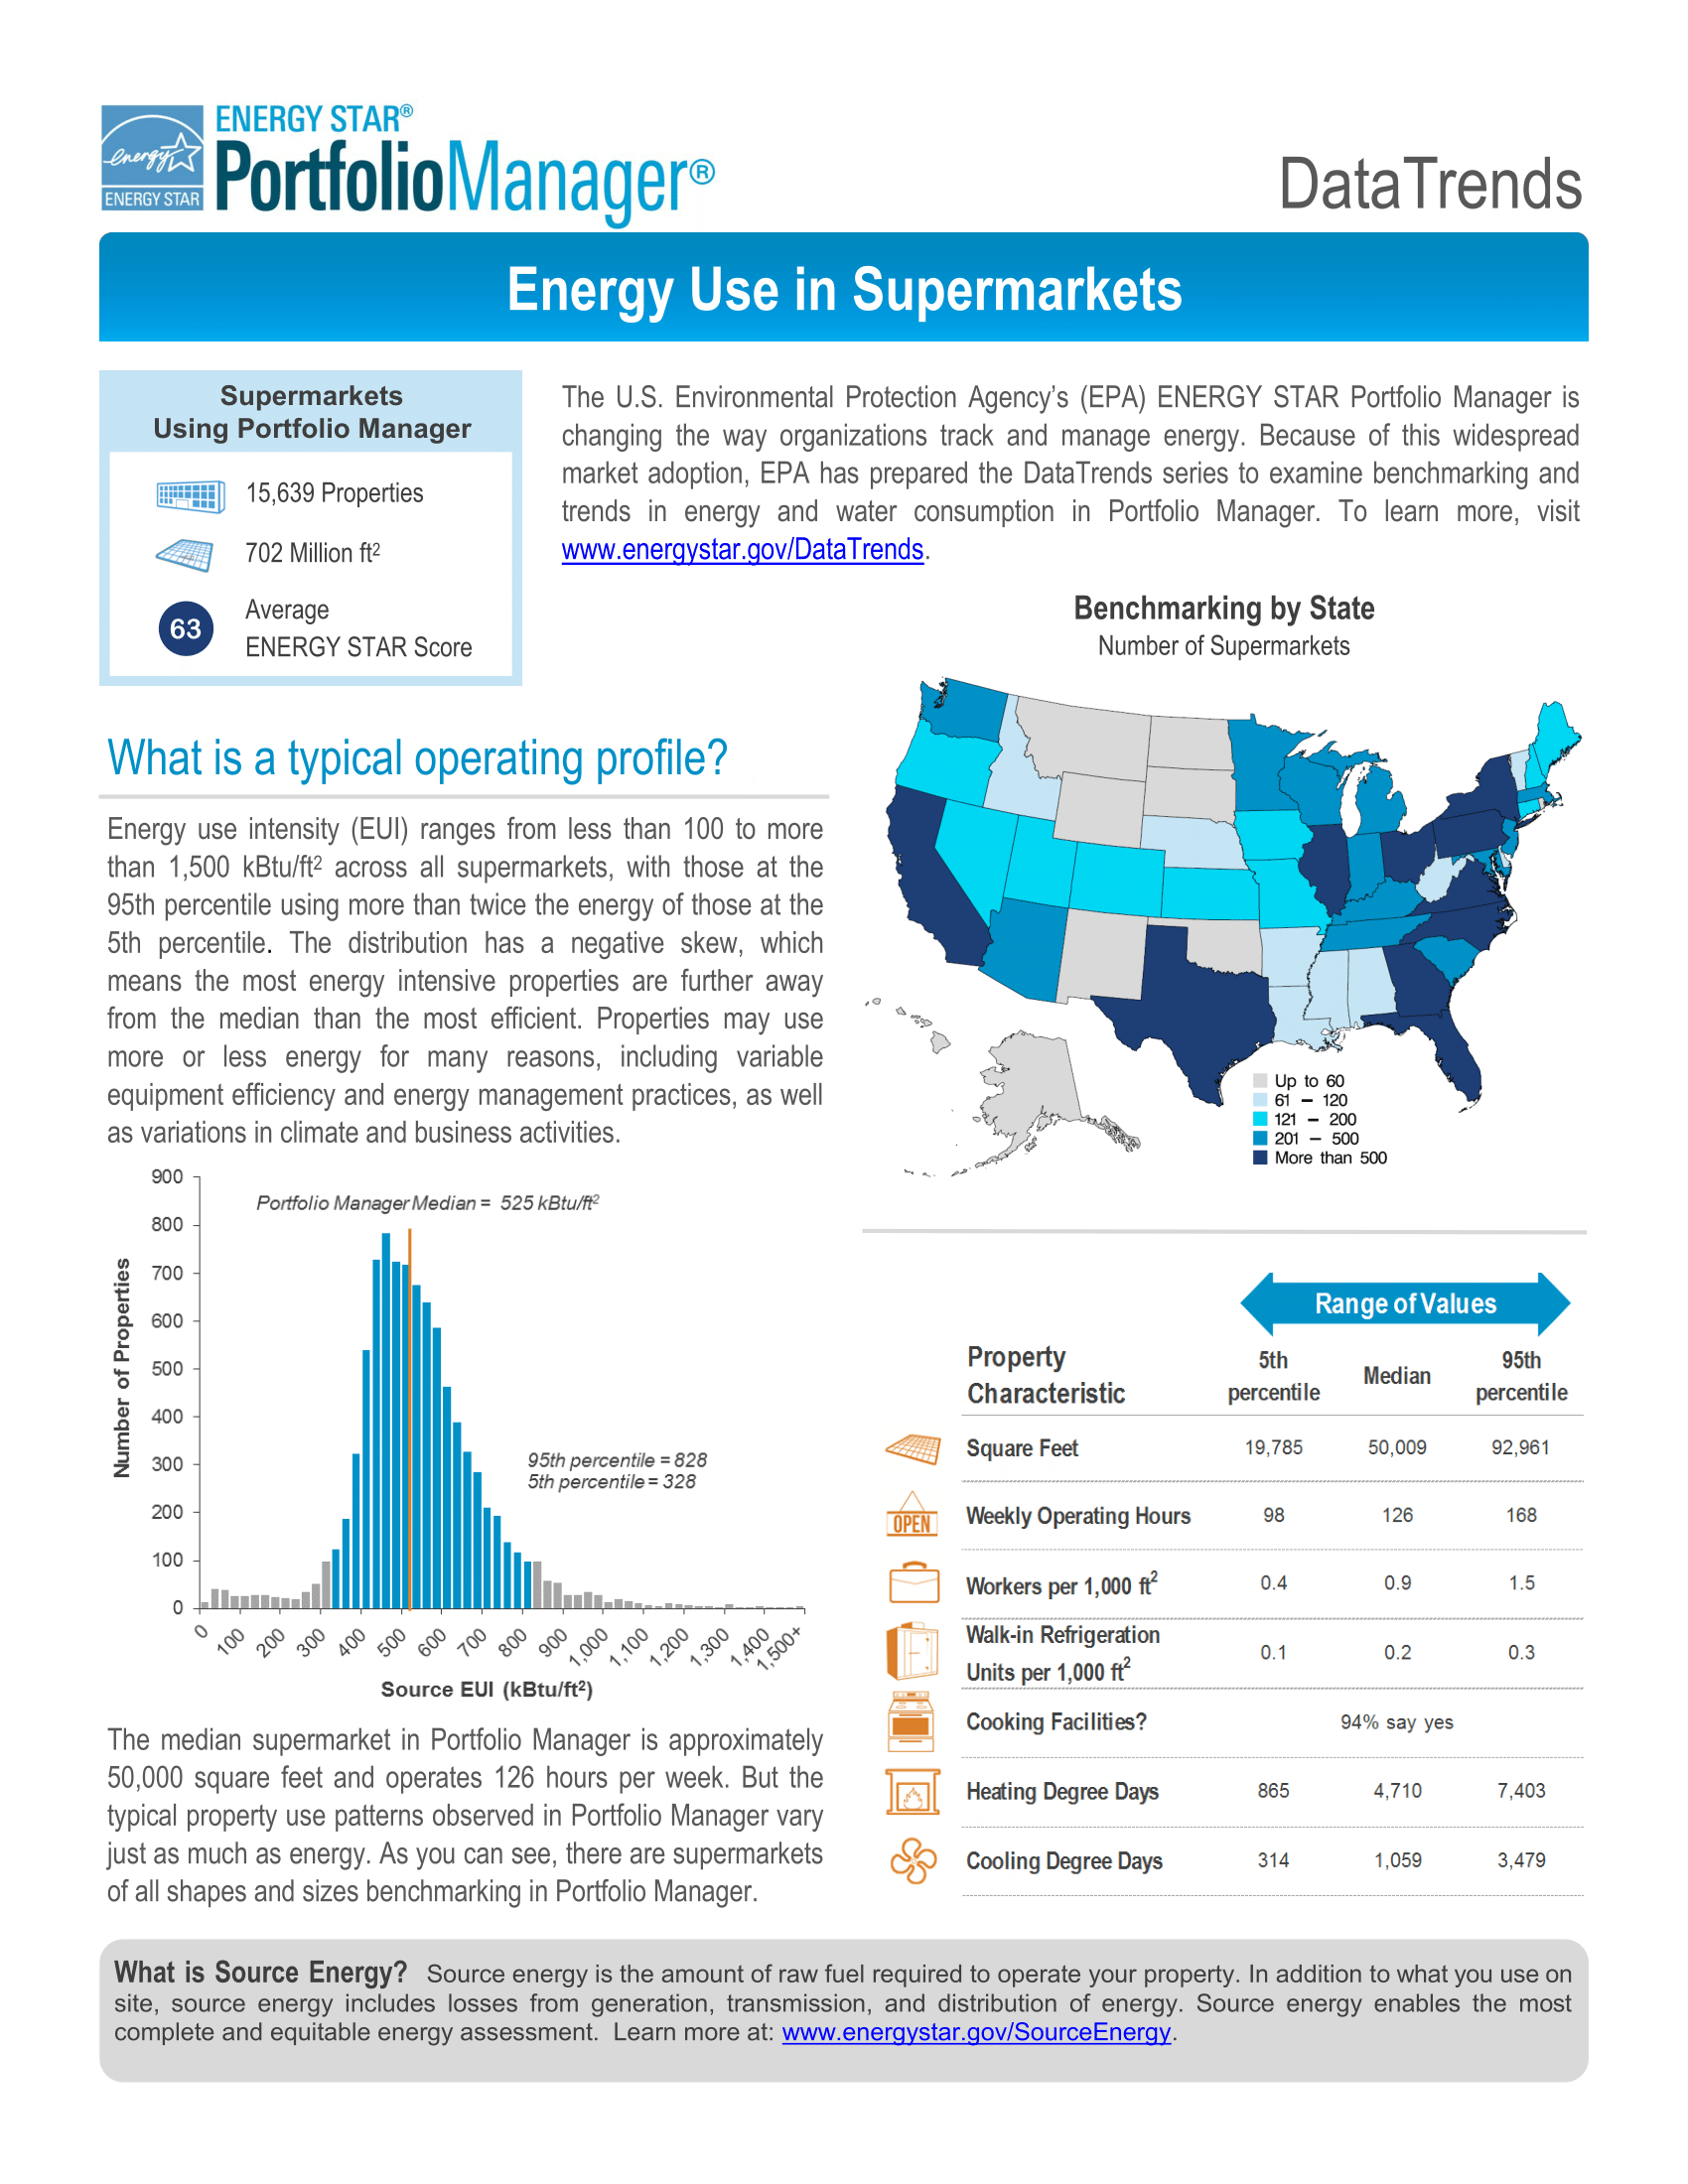 DataTrends: Energy Use in Supermarkets